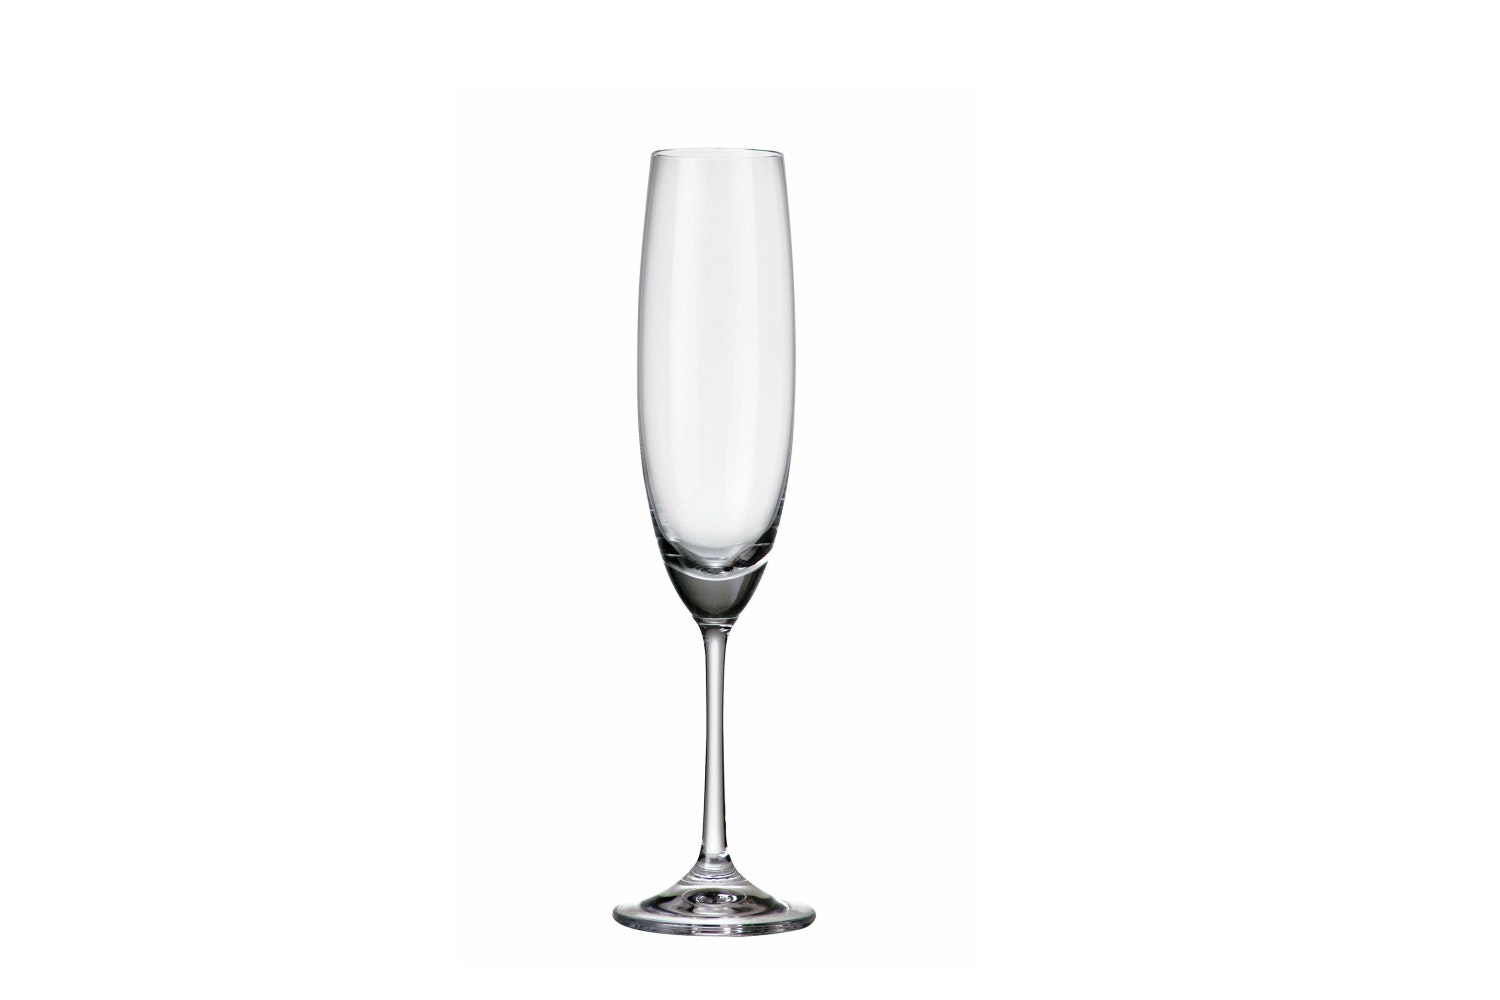 Tipperary Crystal | Connoisseur Set Of 2 Champagne Flutes In A Gift Box